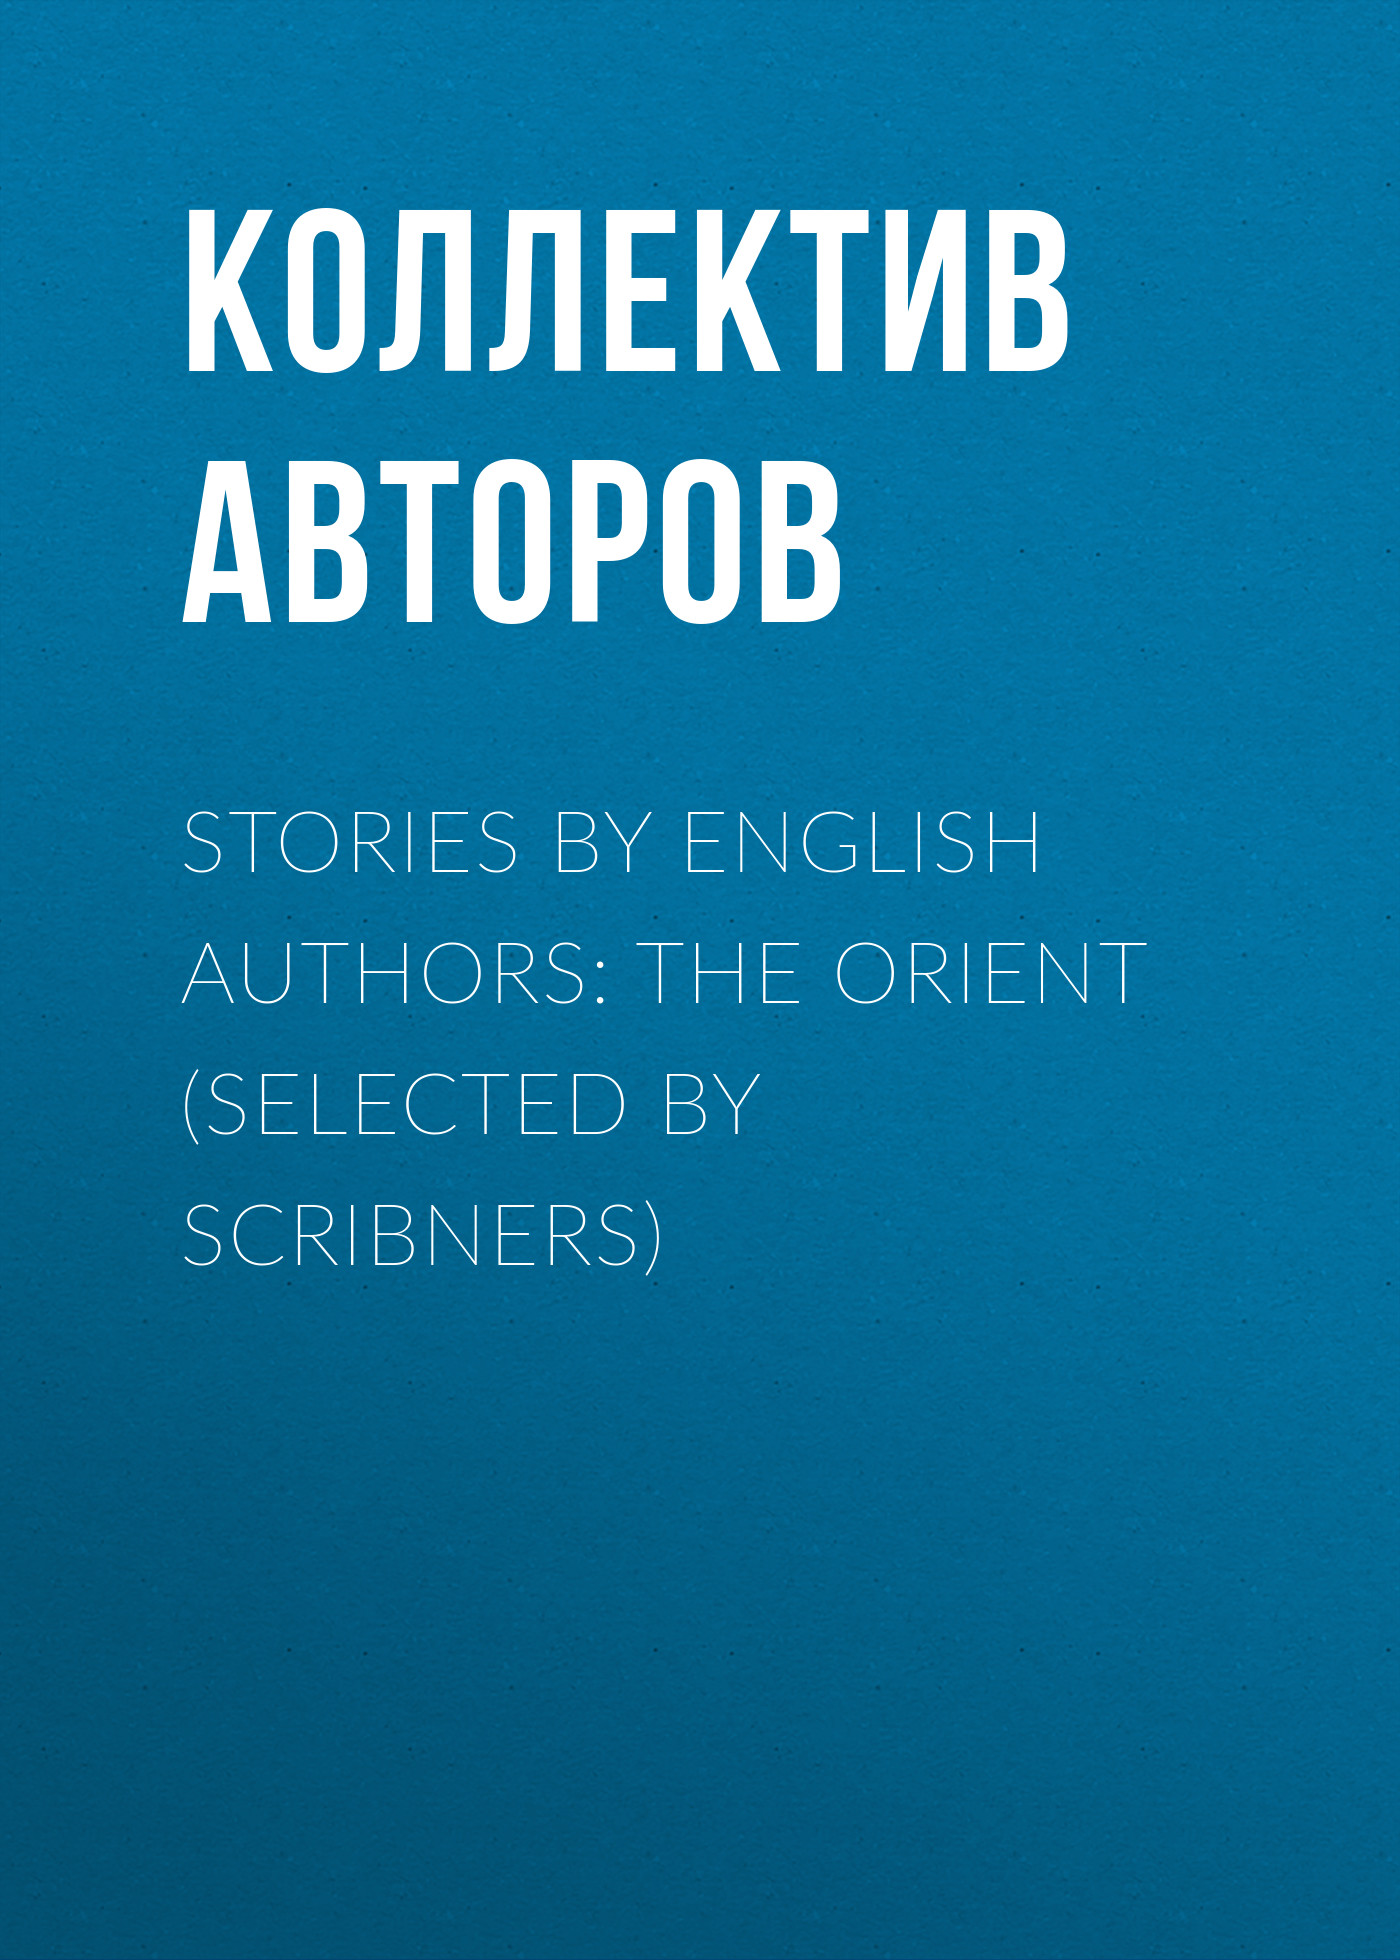 Коллектив авторов Stories by English Authors: The Orient (Selected by Scribners) коллектив авторов stories by english authors germany